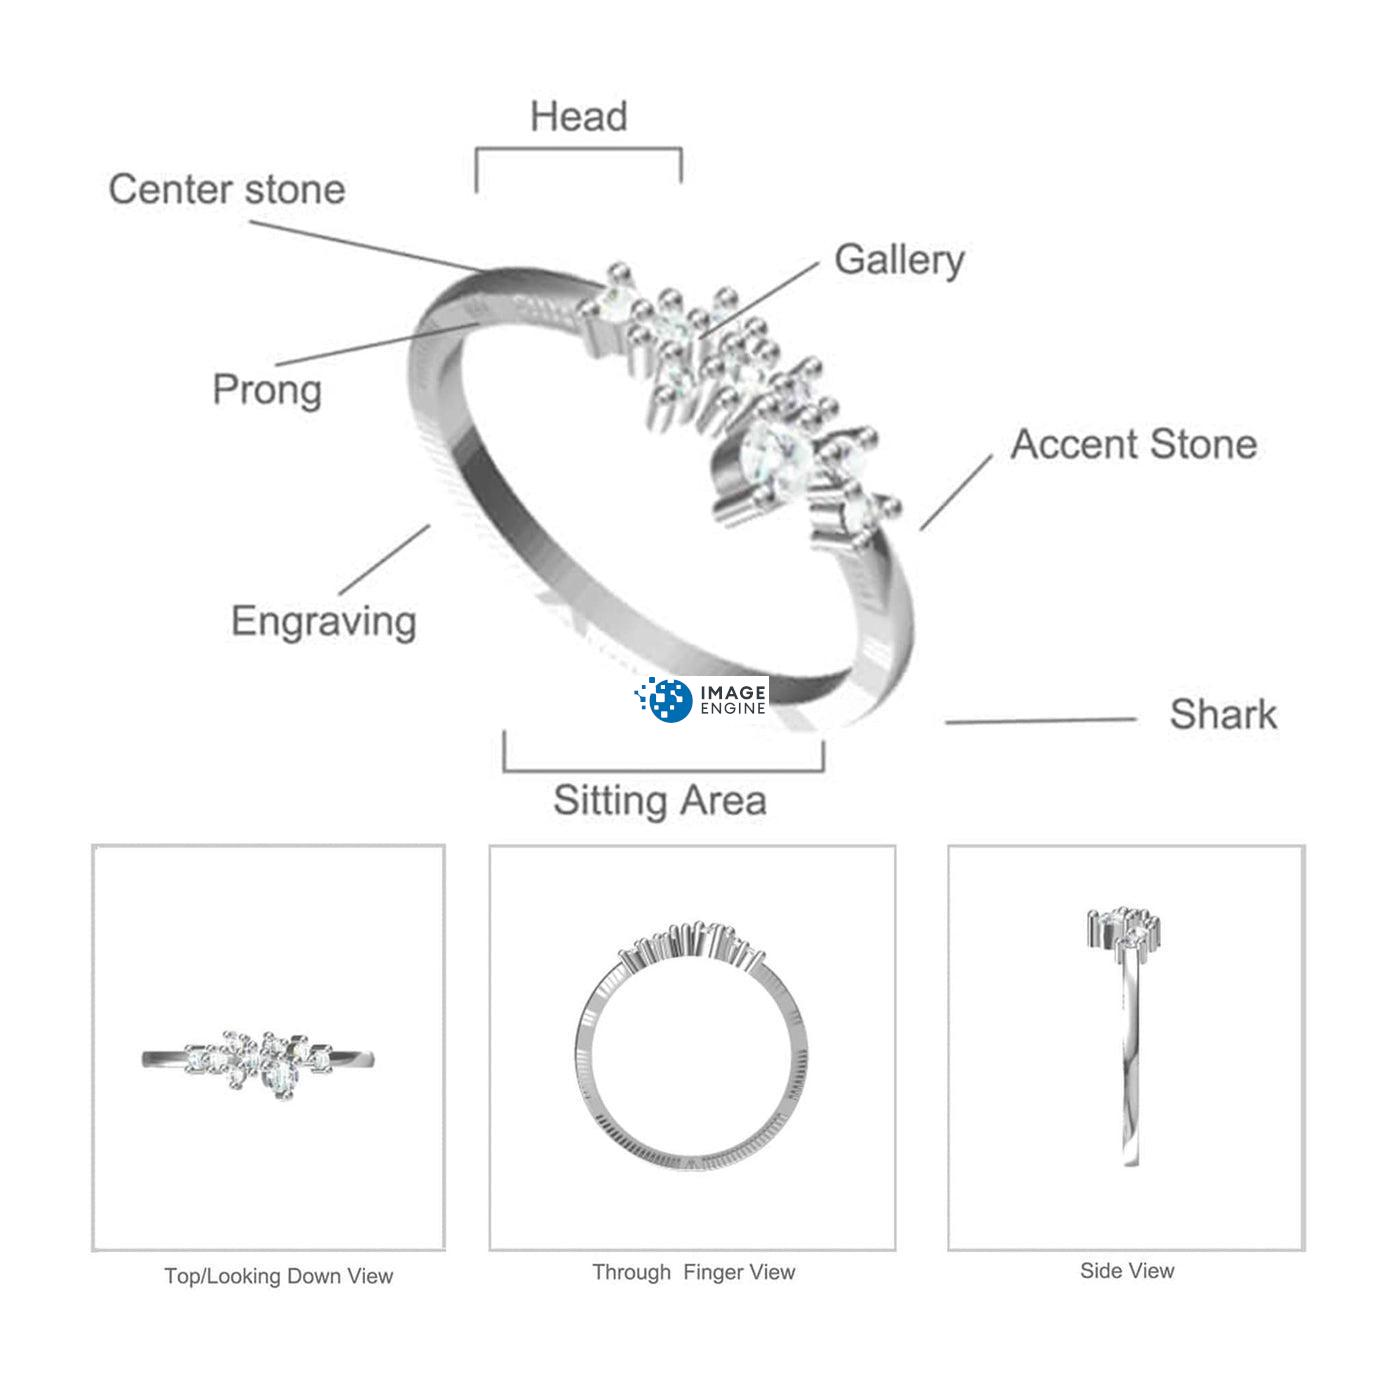 Rose Quartz Cluster Ring Diagram and Specifications